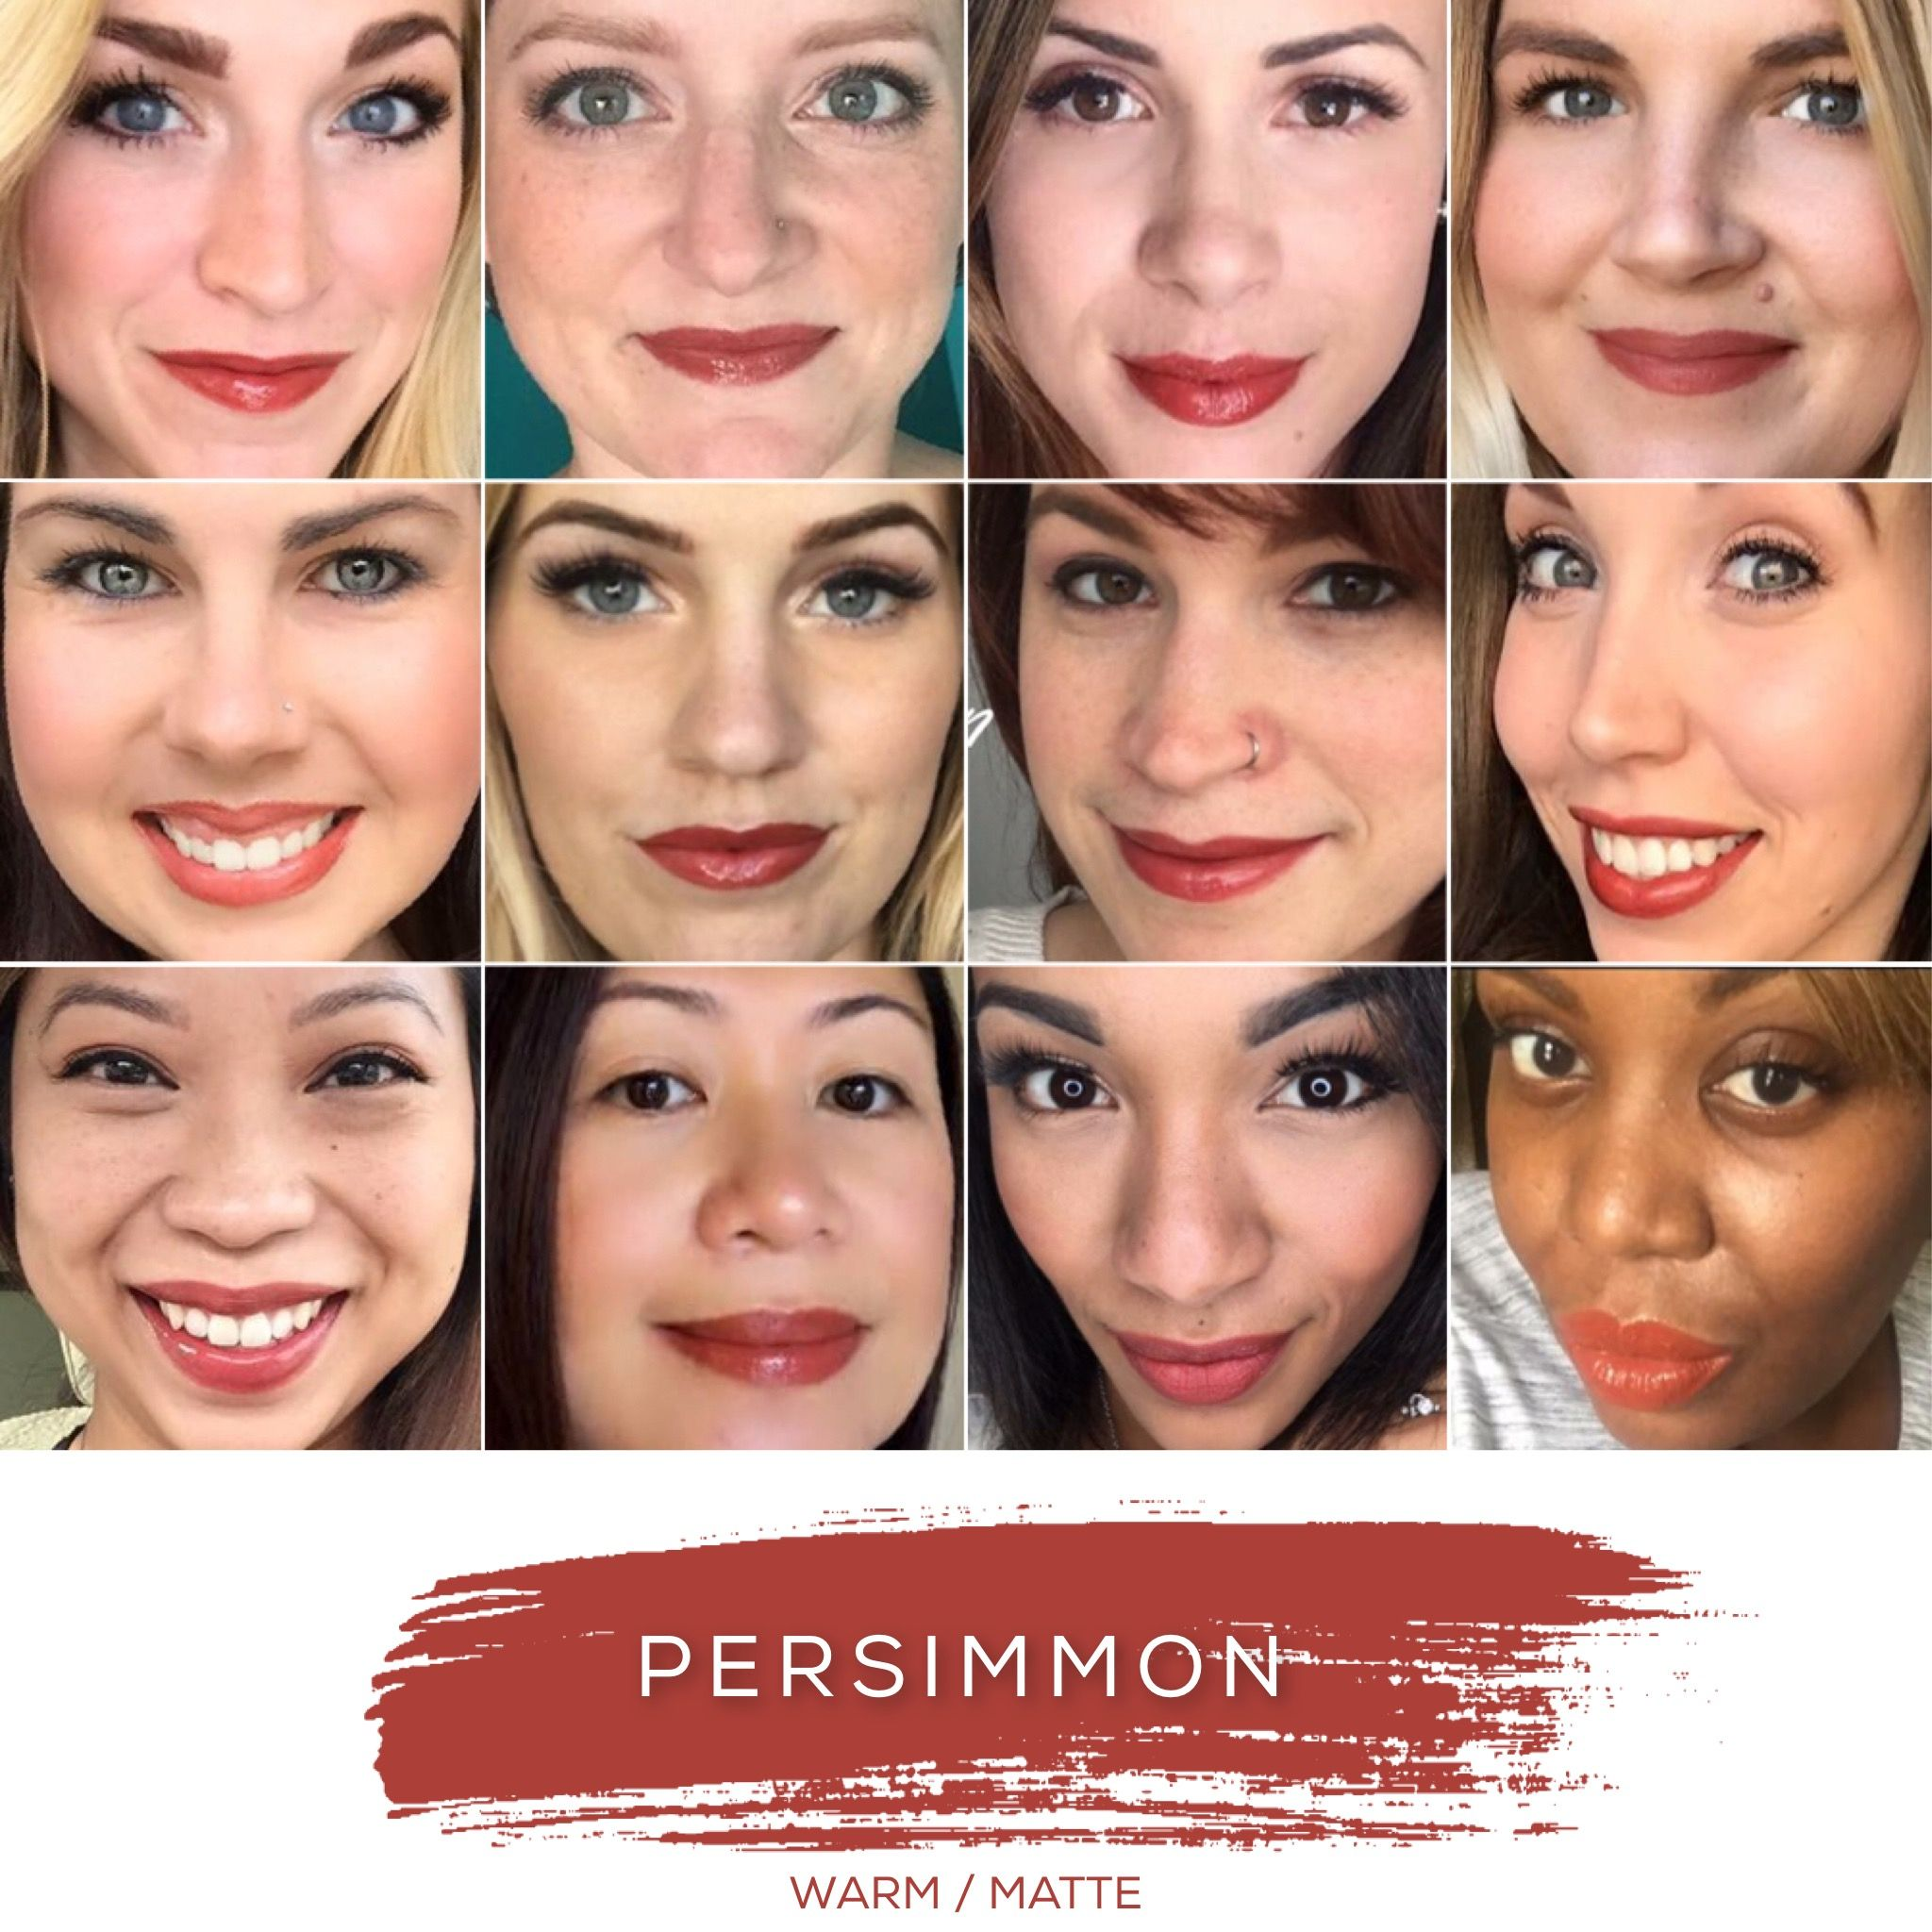 Persimmon. LipSense Distributor # 351172. Email: prettypoutyperfection@gmail.com. FB Group: Pretty Pouty Perfection